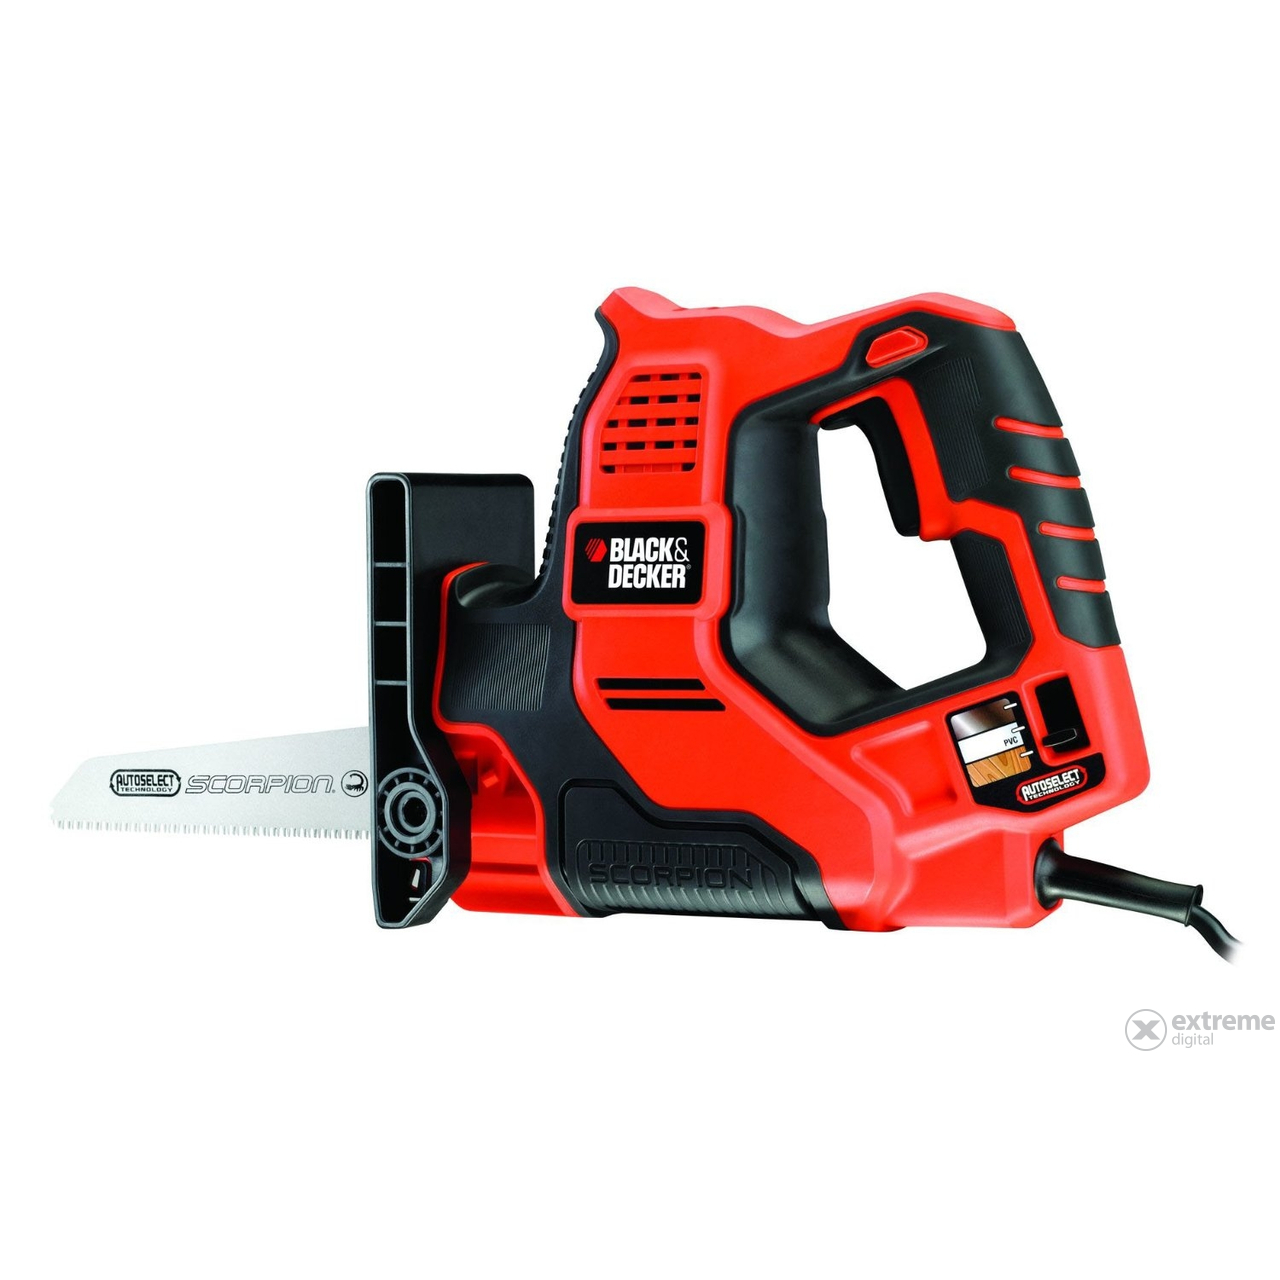 Black & Decker RS890K žaga scorpion